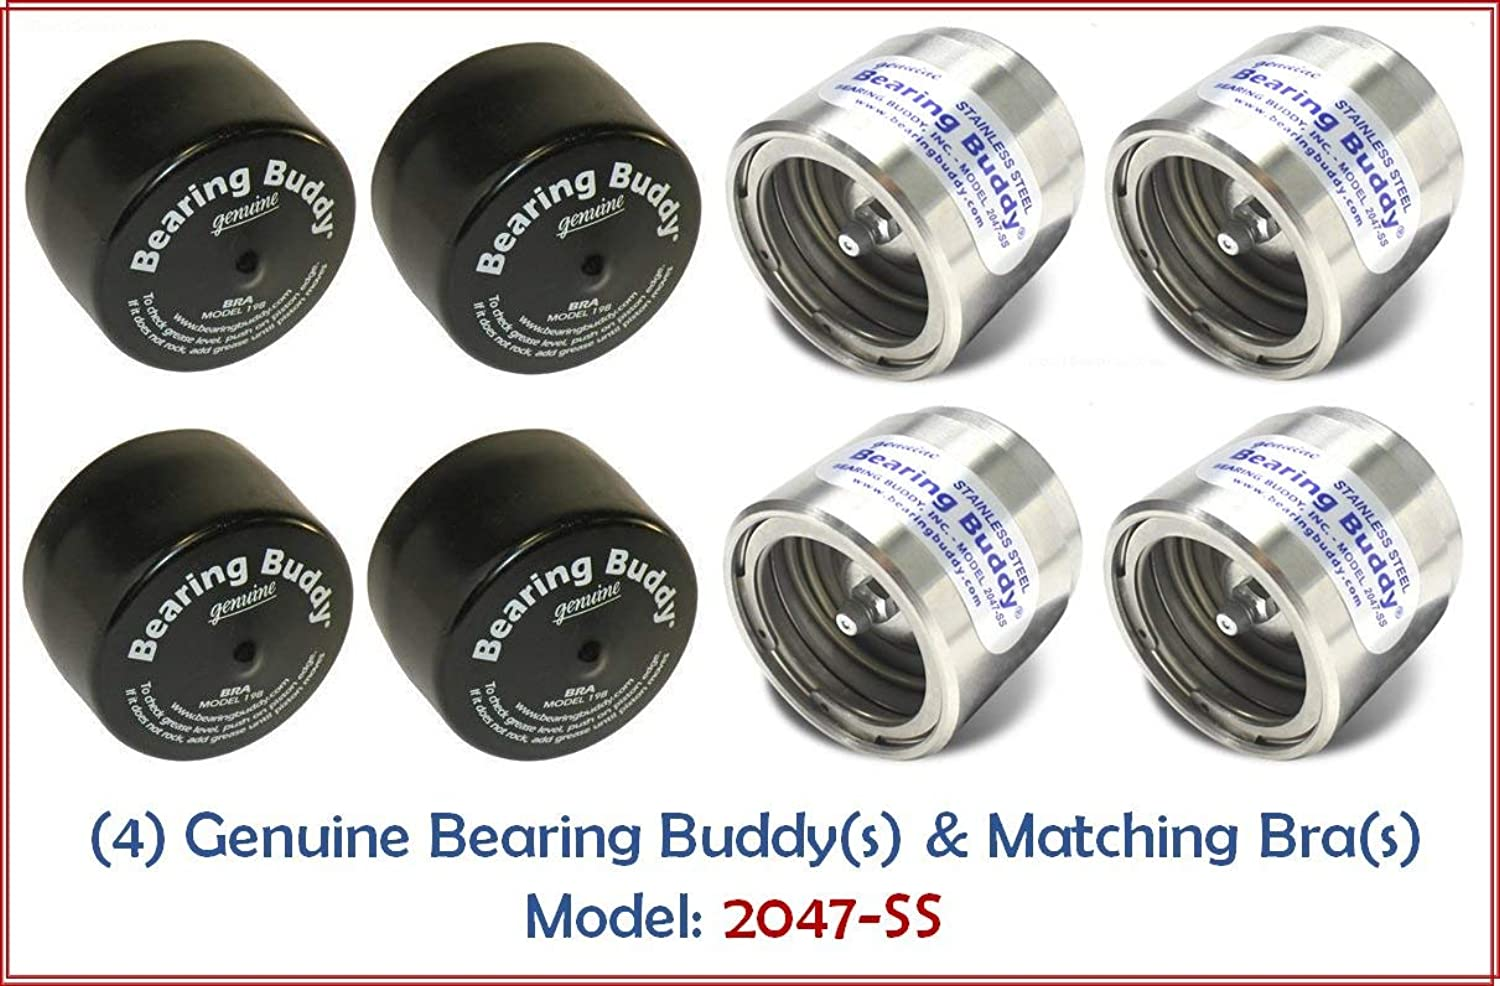 Bearing Buddy STAINLESS STEEL (5.2cm Diameter) with Predective Bras Model 2047SS  2 Pairs